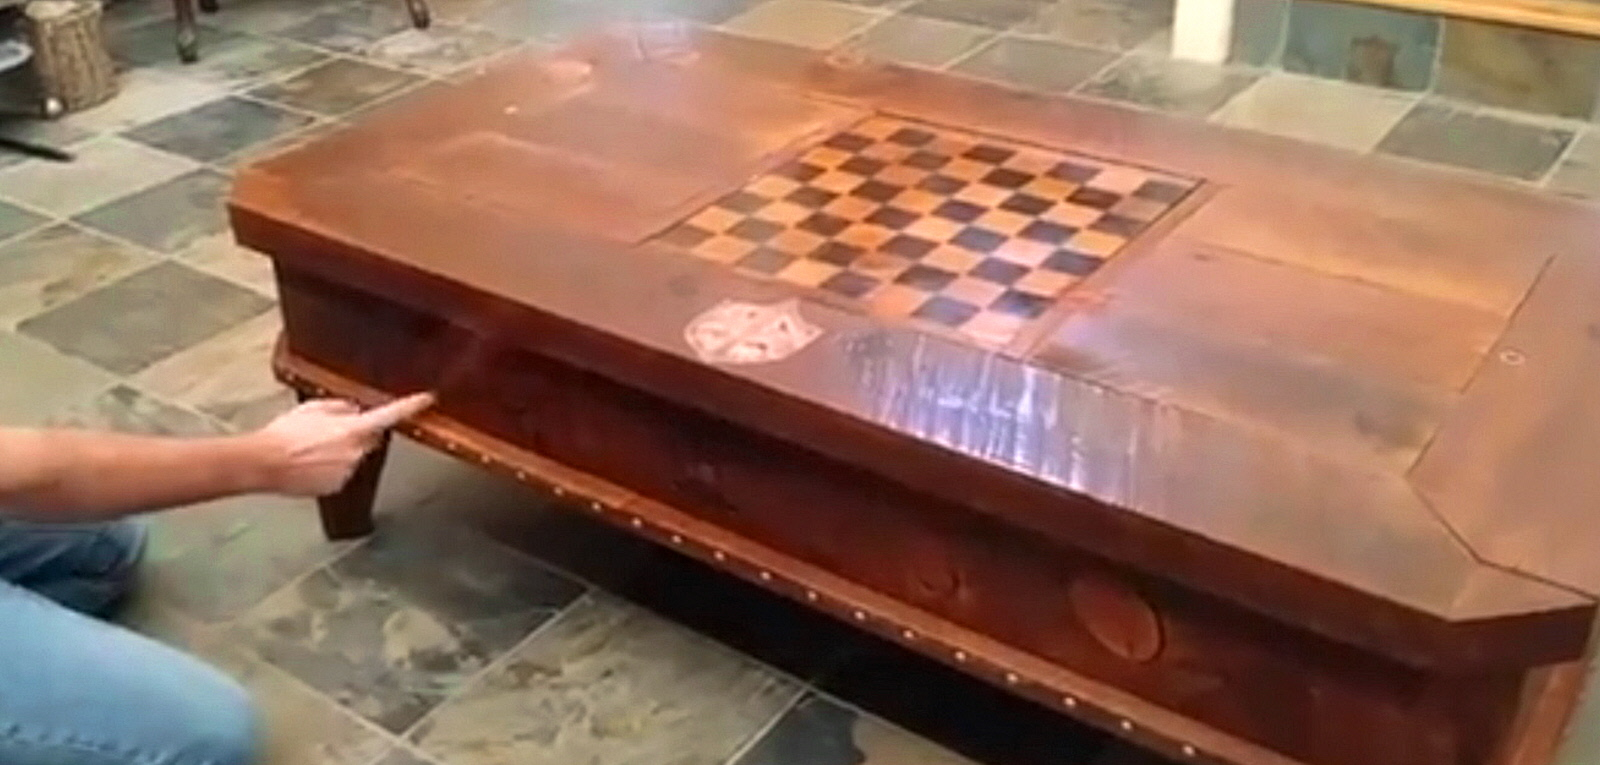 Fun Wizard Themed Mechanical Table With Compartments And Surprises Es Off Harry Potter Fans Core77